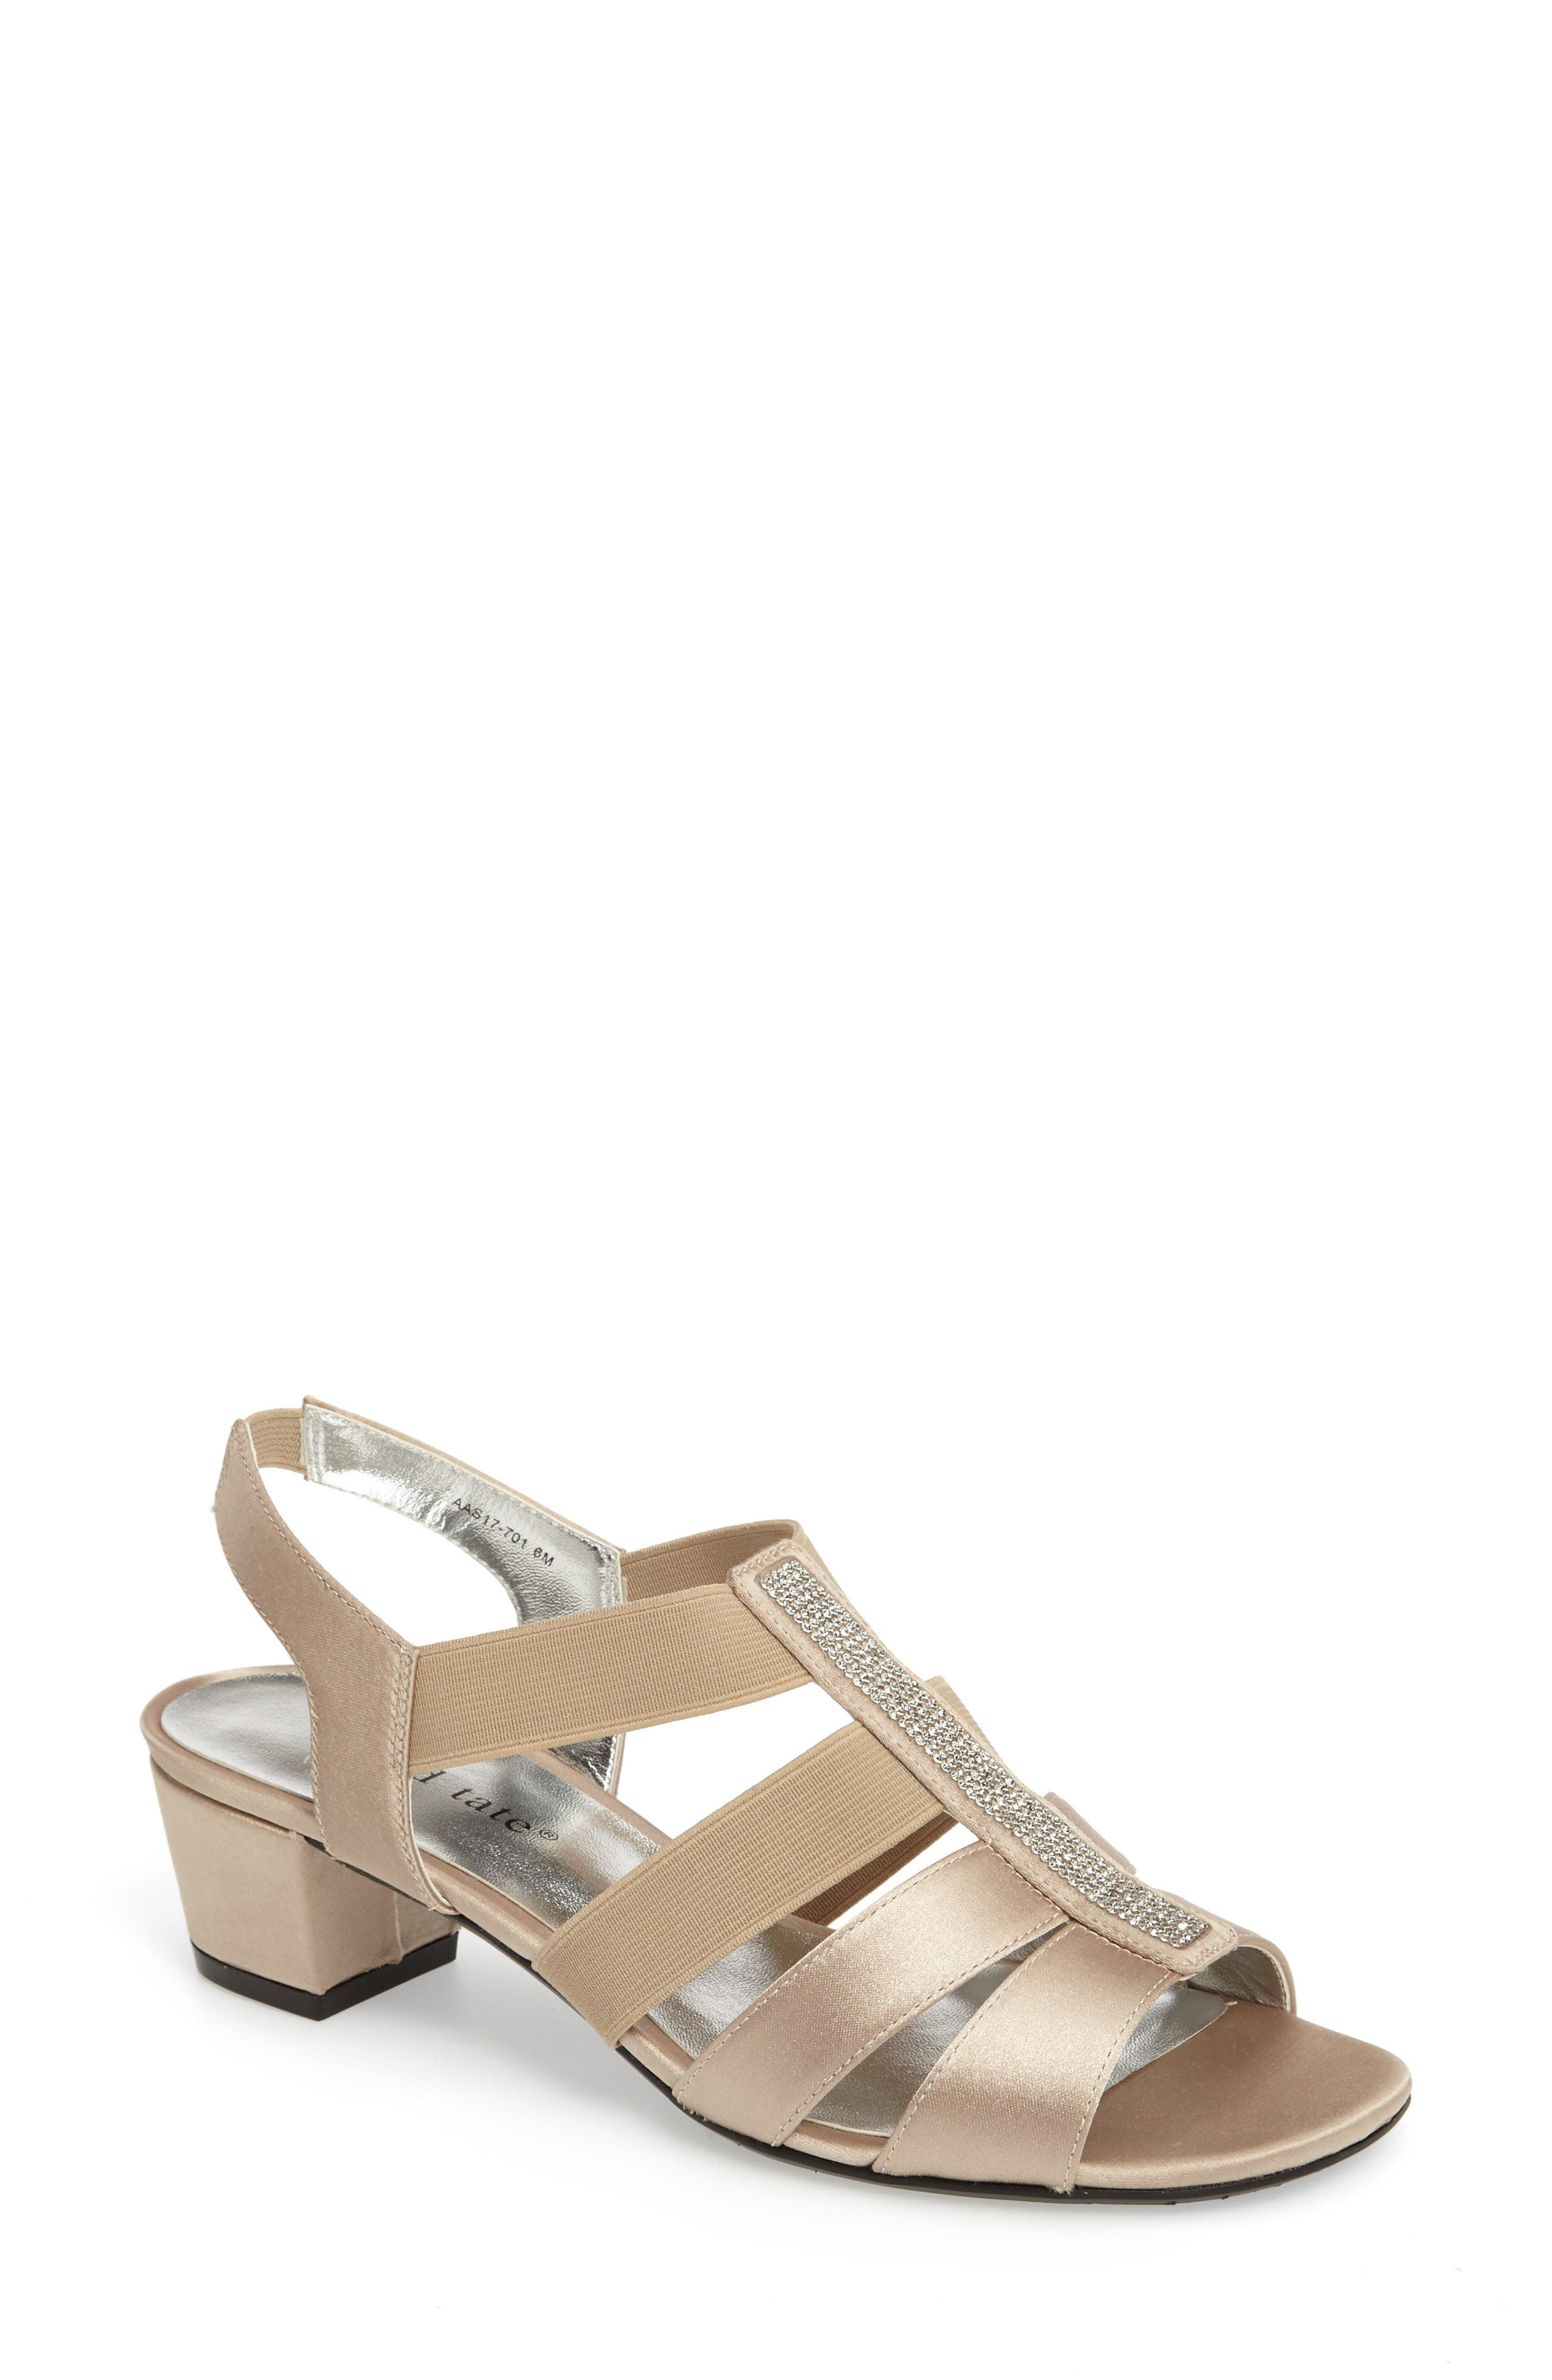 DAVID TATE Eve Embellished Sandal